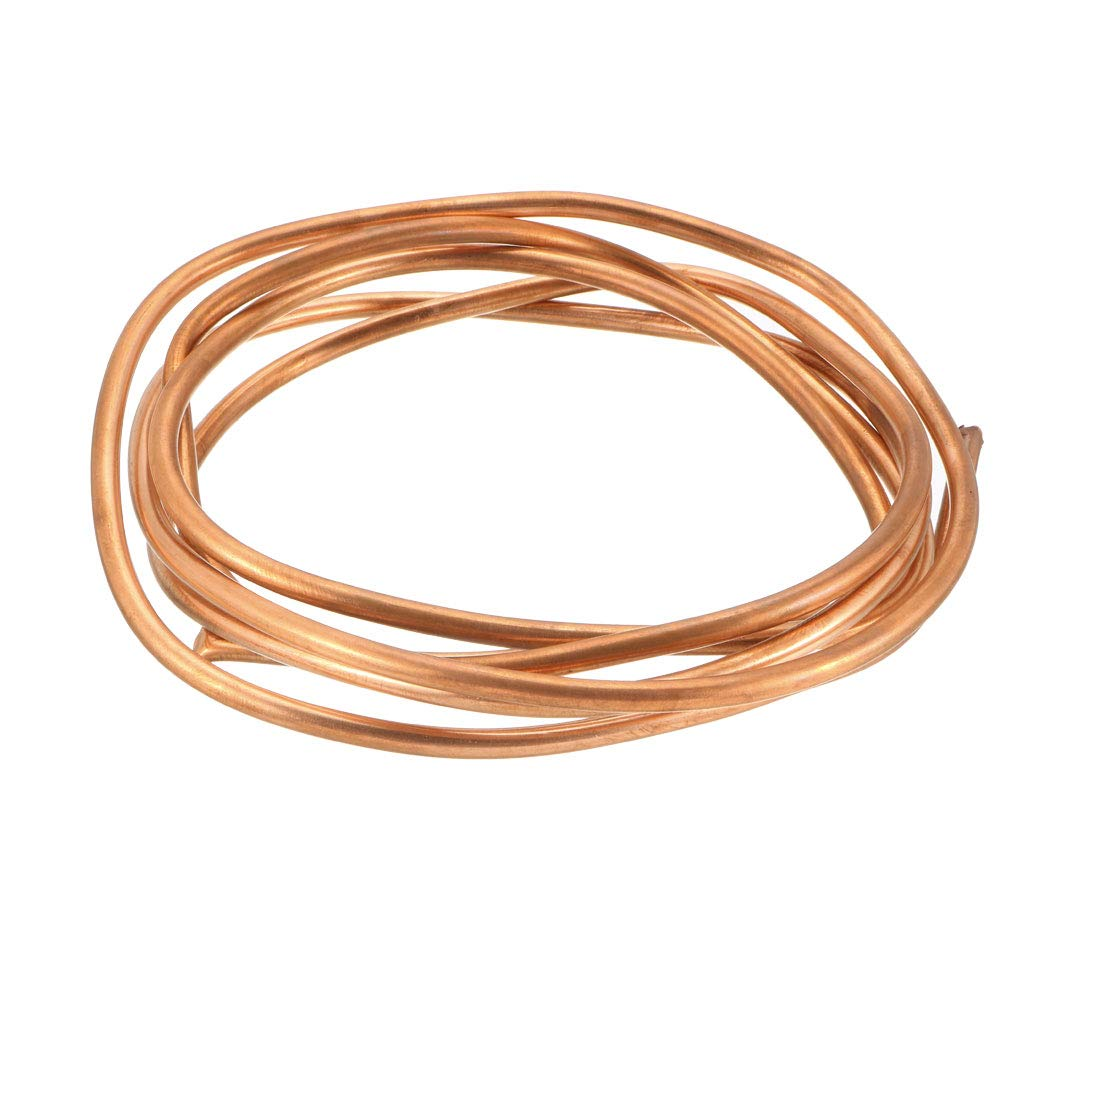 """uxcell Refrigeration Tubing, 13/64"""" OD x 5/32"""" ID x 6.5 Ft Soft Coil Copper Tubing"""